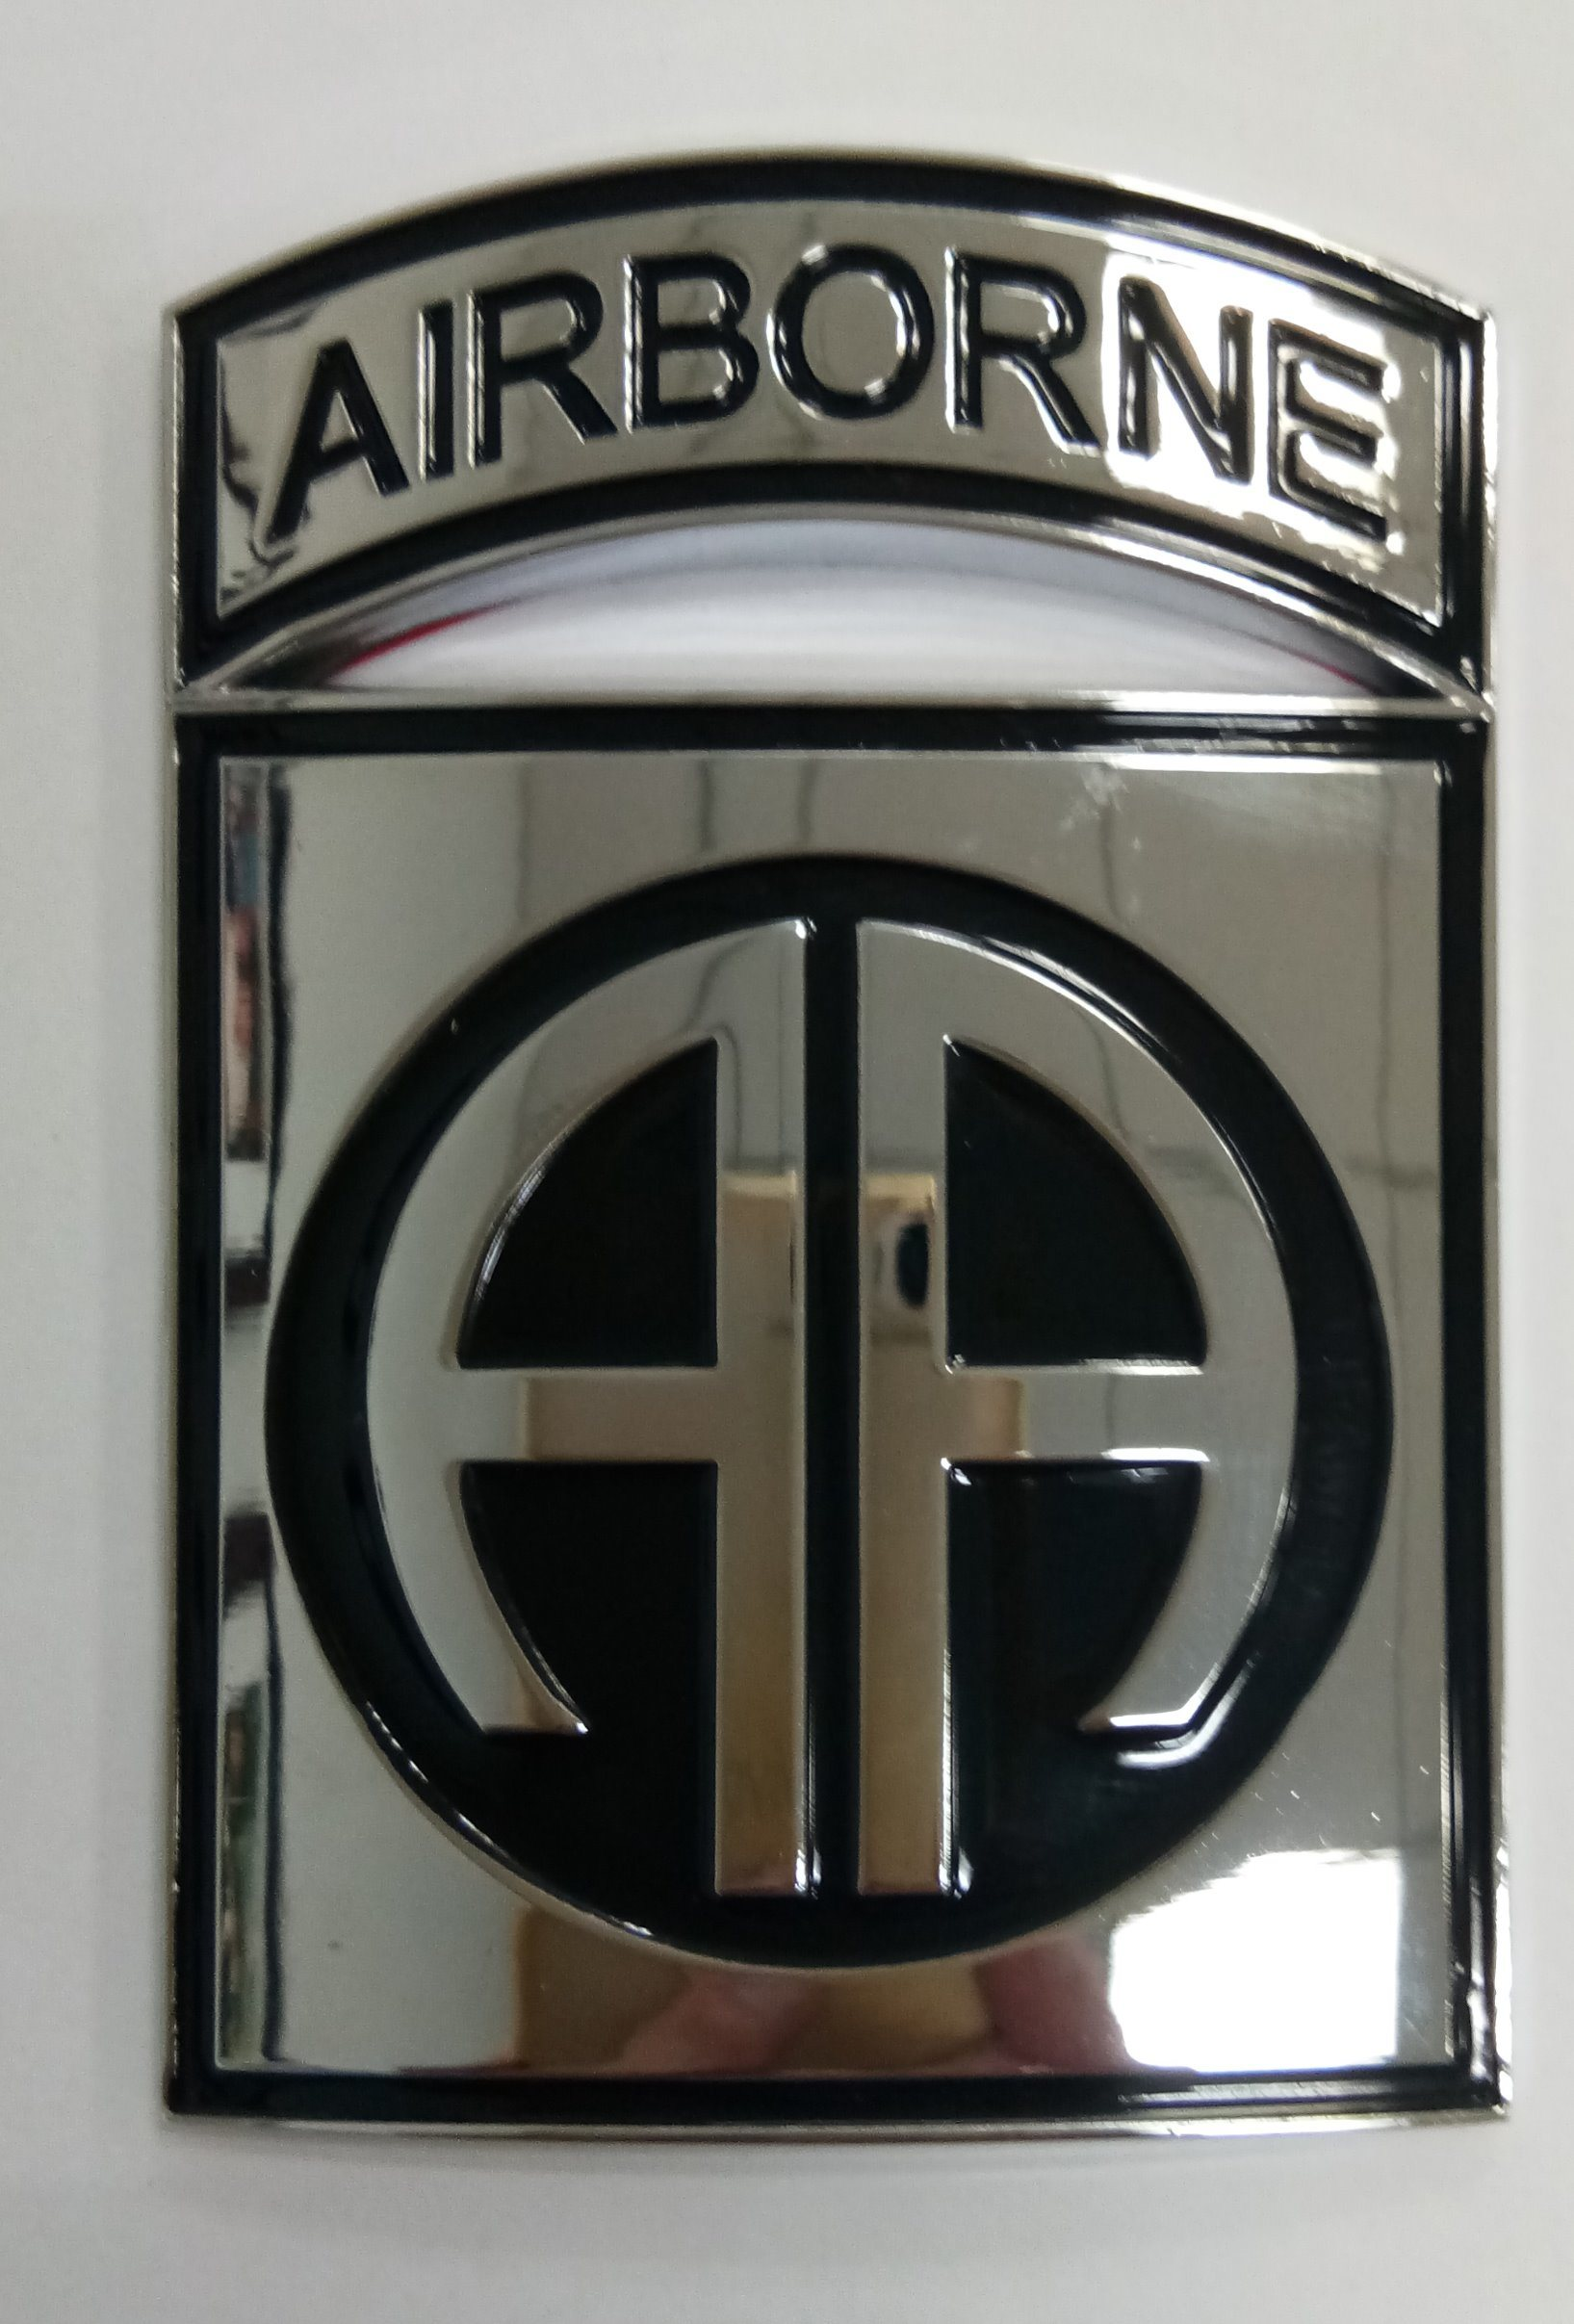 China 82nd airborne emblem custom auto emblems make your own car emblem china custom auto emblems make your own car emblem auto emblem